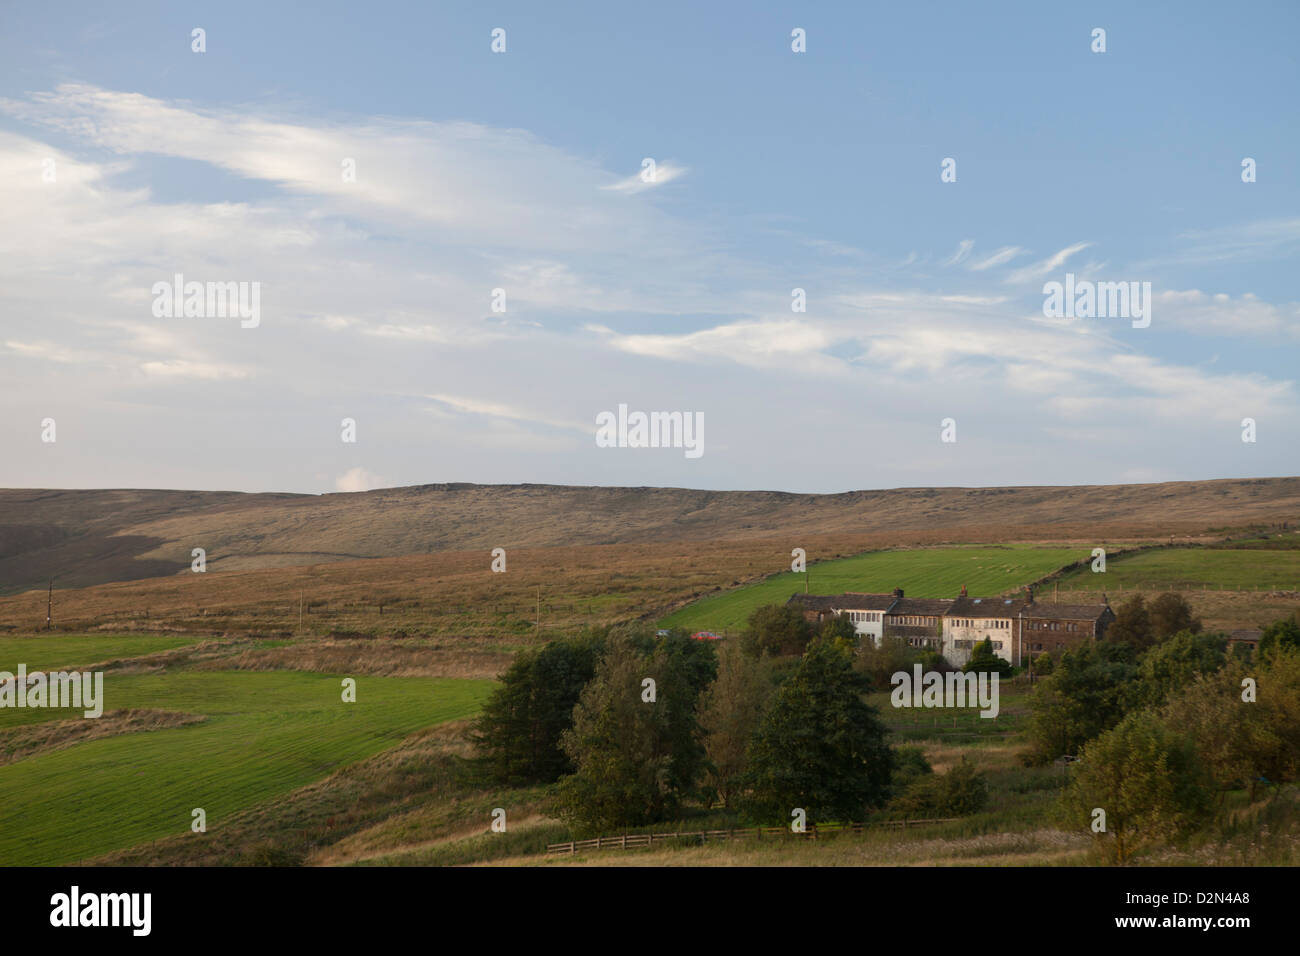 Traditional Pennine weavers cottages near below Standedge between Delph and Marsden in Saddleworth - Stock Image